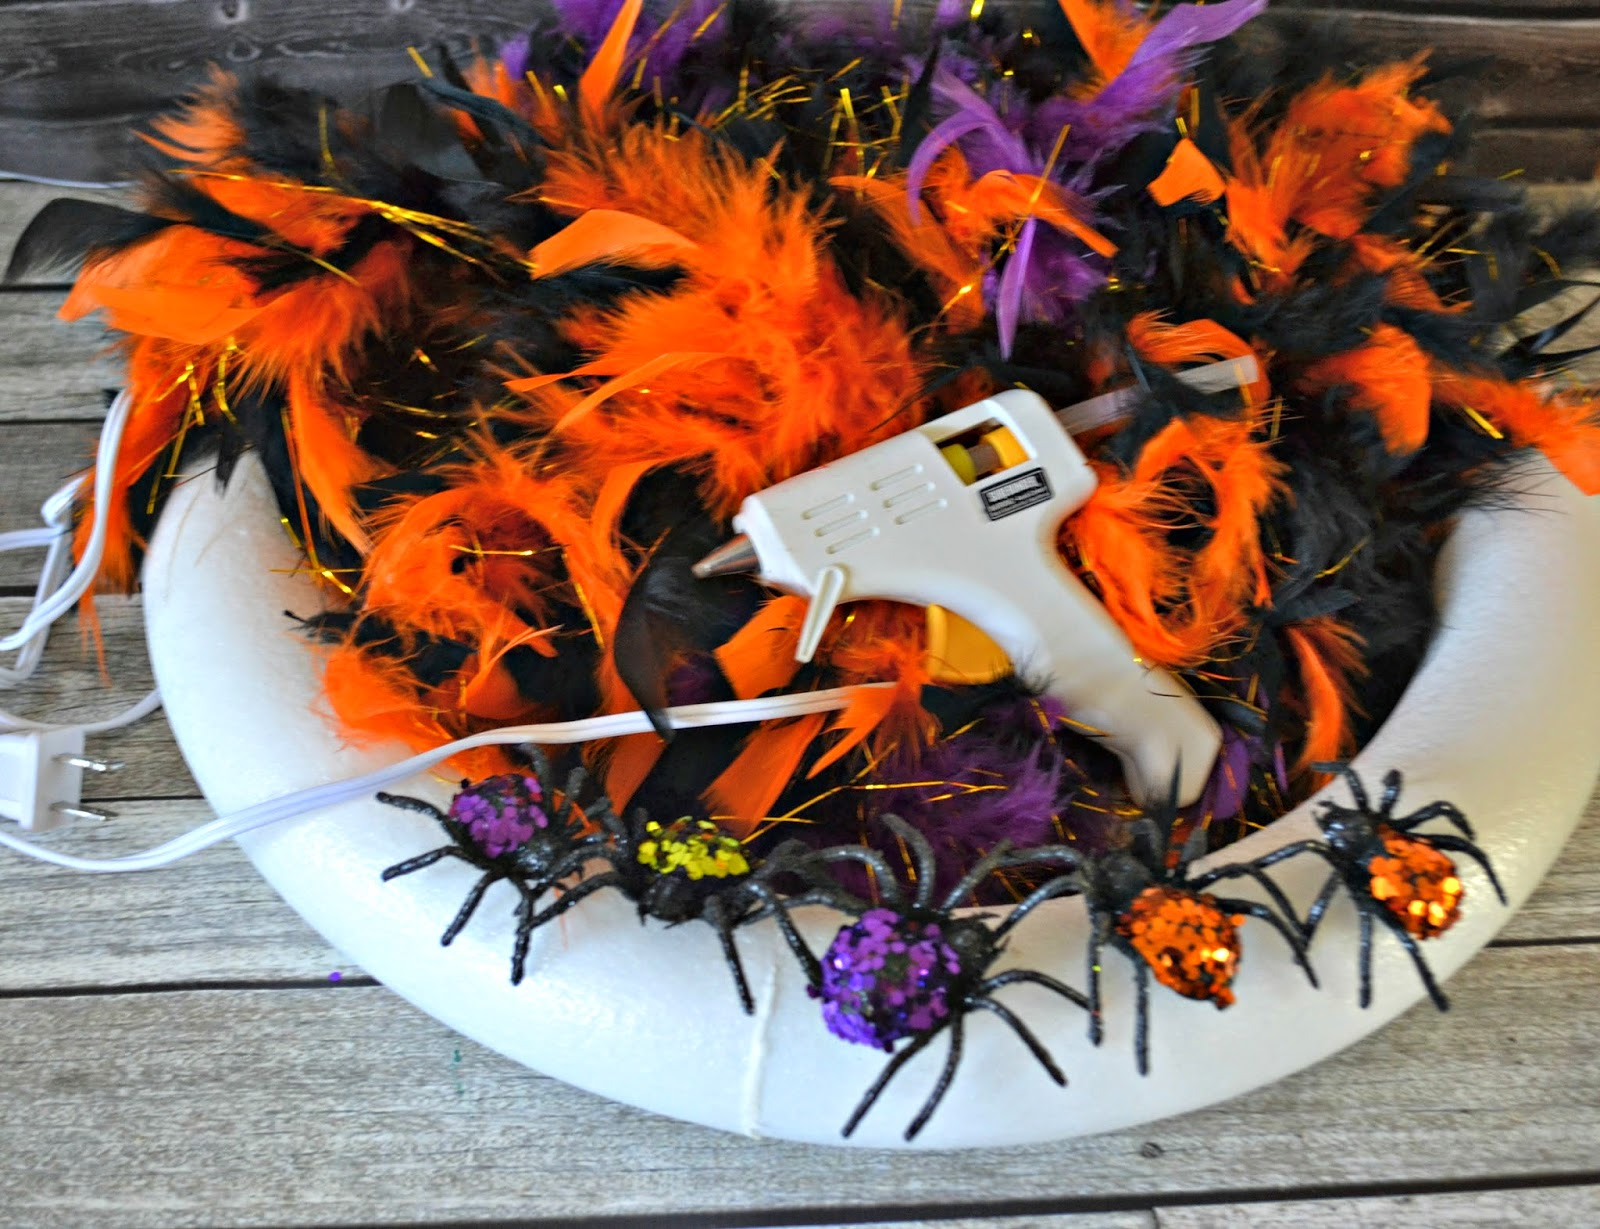 Feathered Halloween Door Wreath #DIY.  Easy Halloween Decorations. DIY Halloween Door Wreath.  Crafts with Boas.  Halloween decorations.  Halloween door decor.  Halloween Home Decor.  Door Wreath.